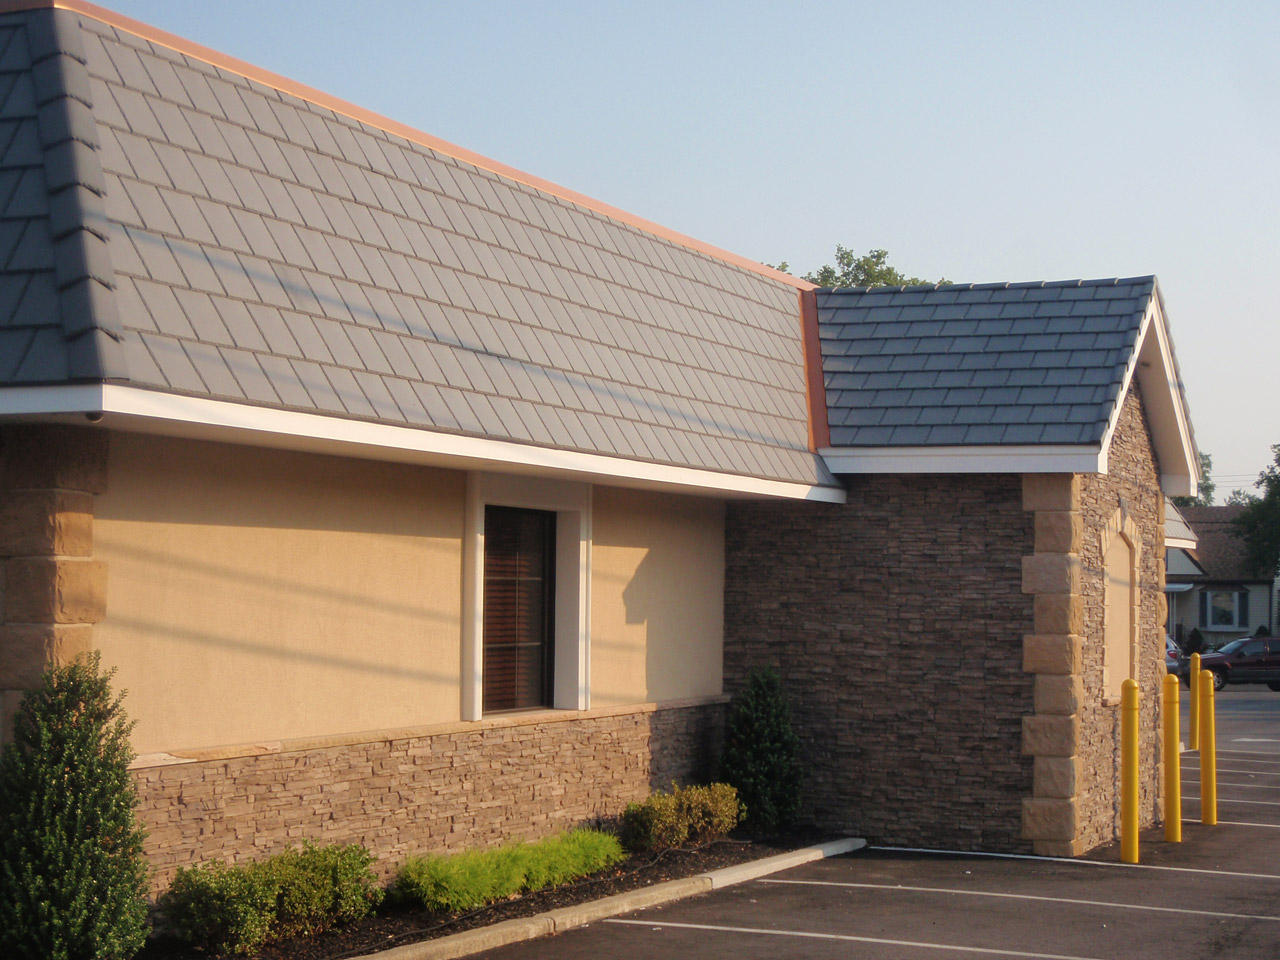 Commercial projects rely on polymer roofing buildipedia for Polymer roofing